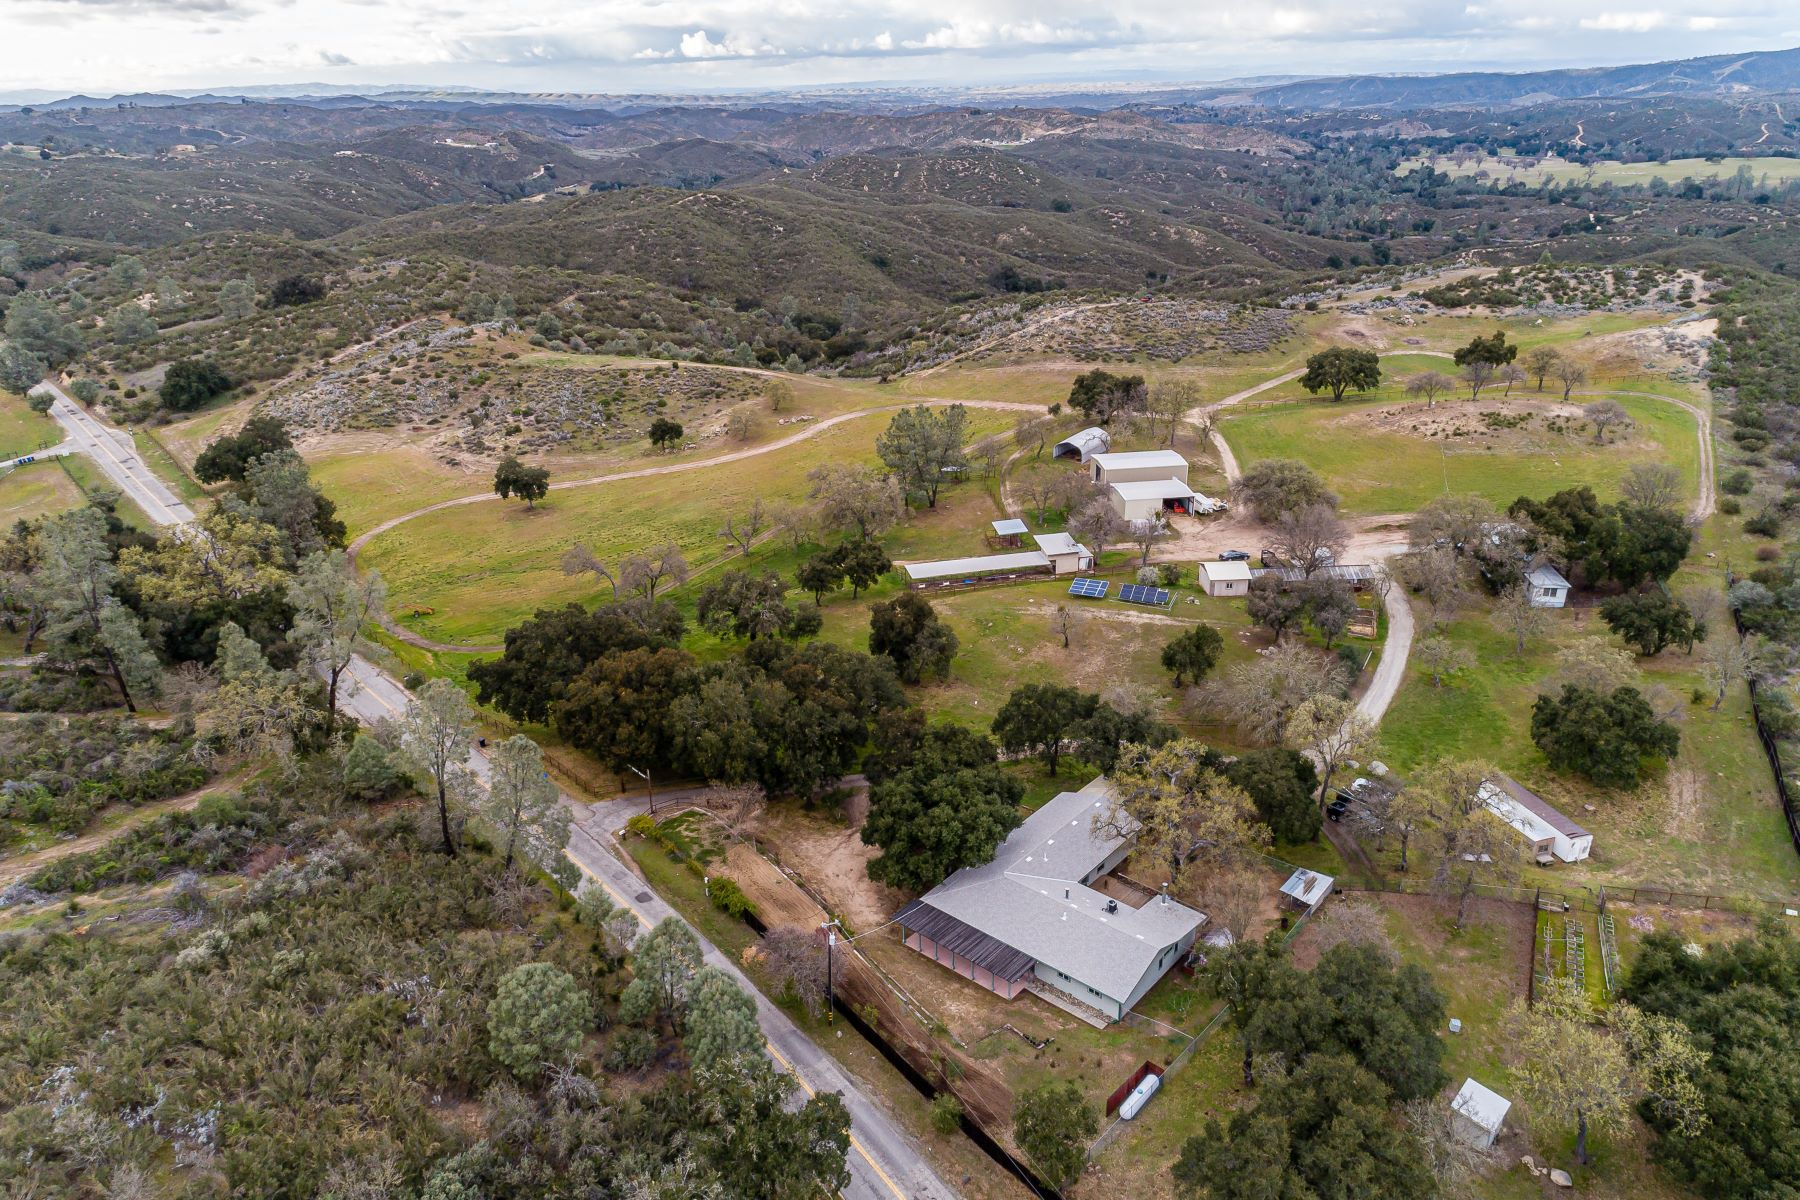 Single Family Homes for Active at Relaxed Country Living Awaits 3928 Parkhill Road Santa Margarita, California 93453 United States